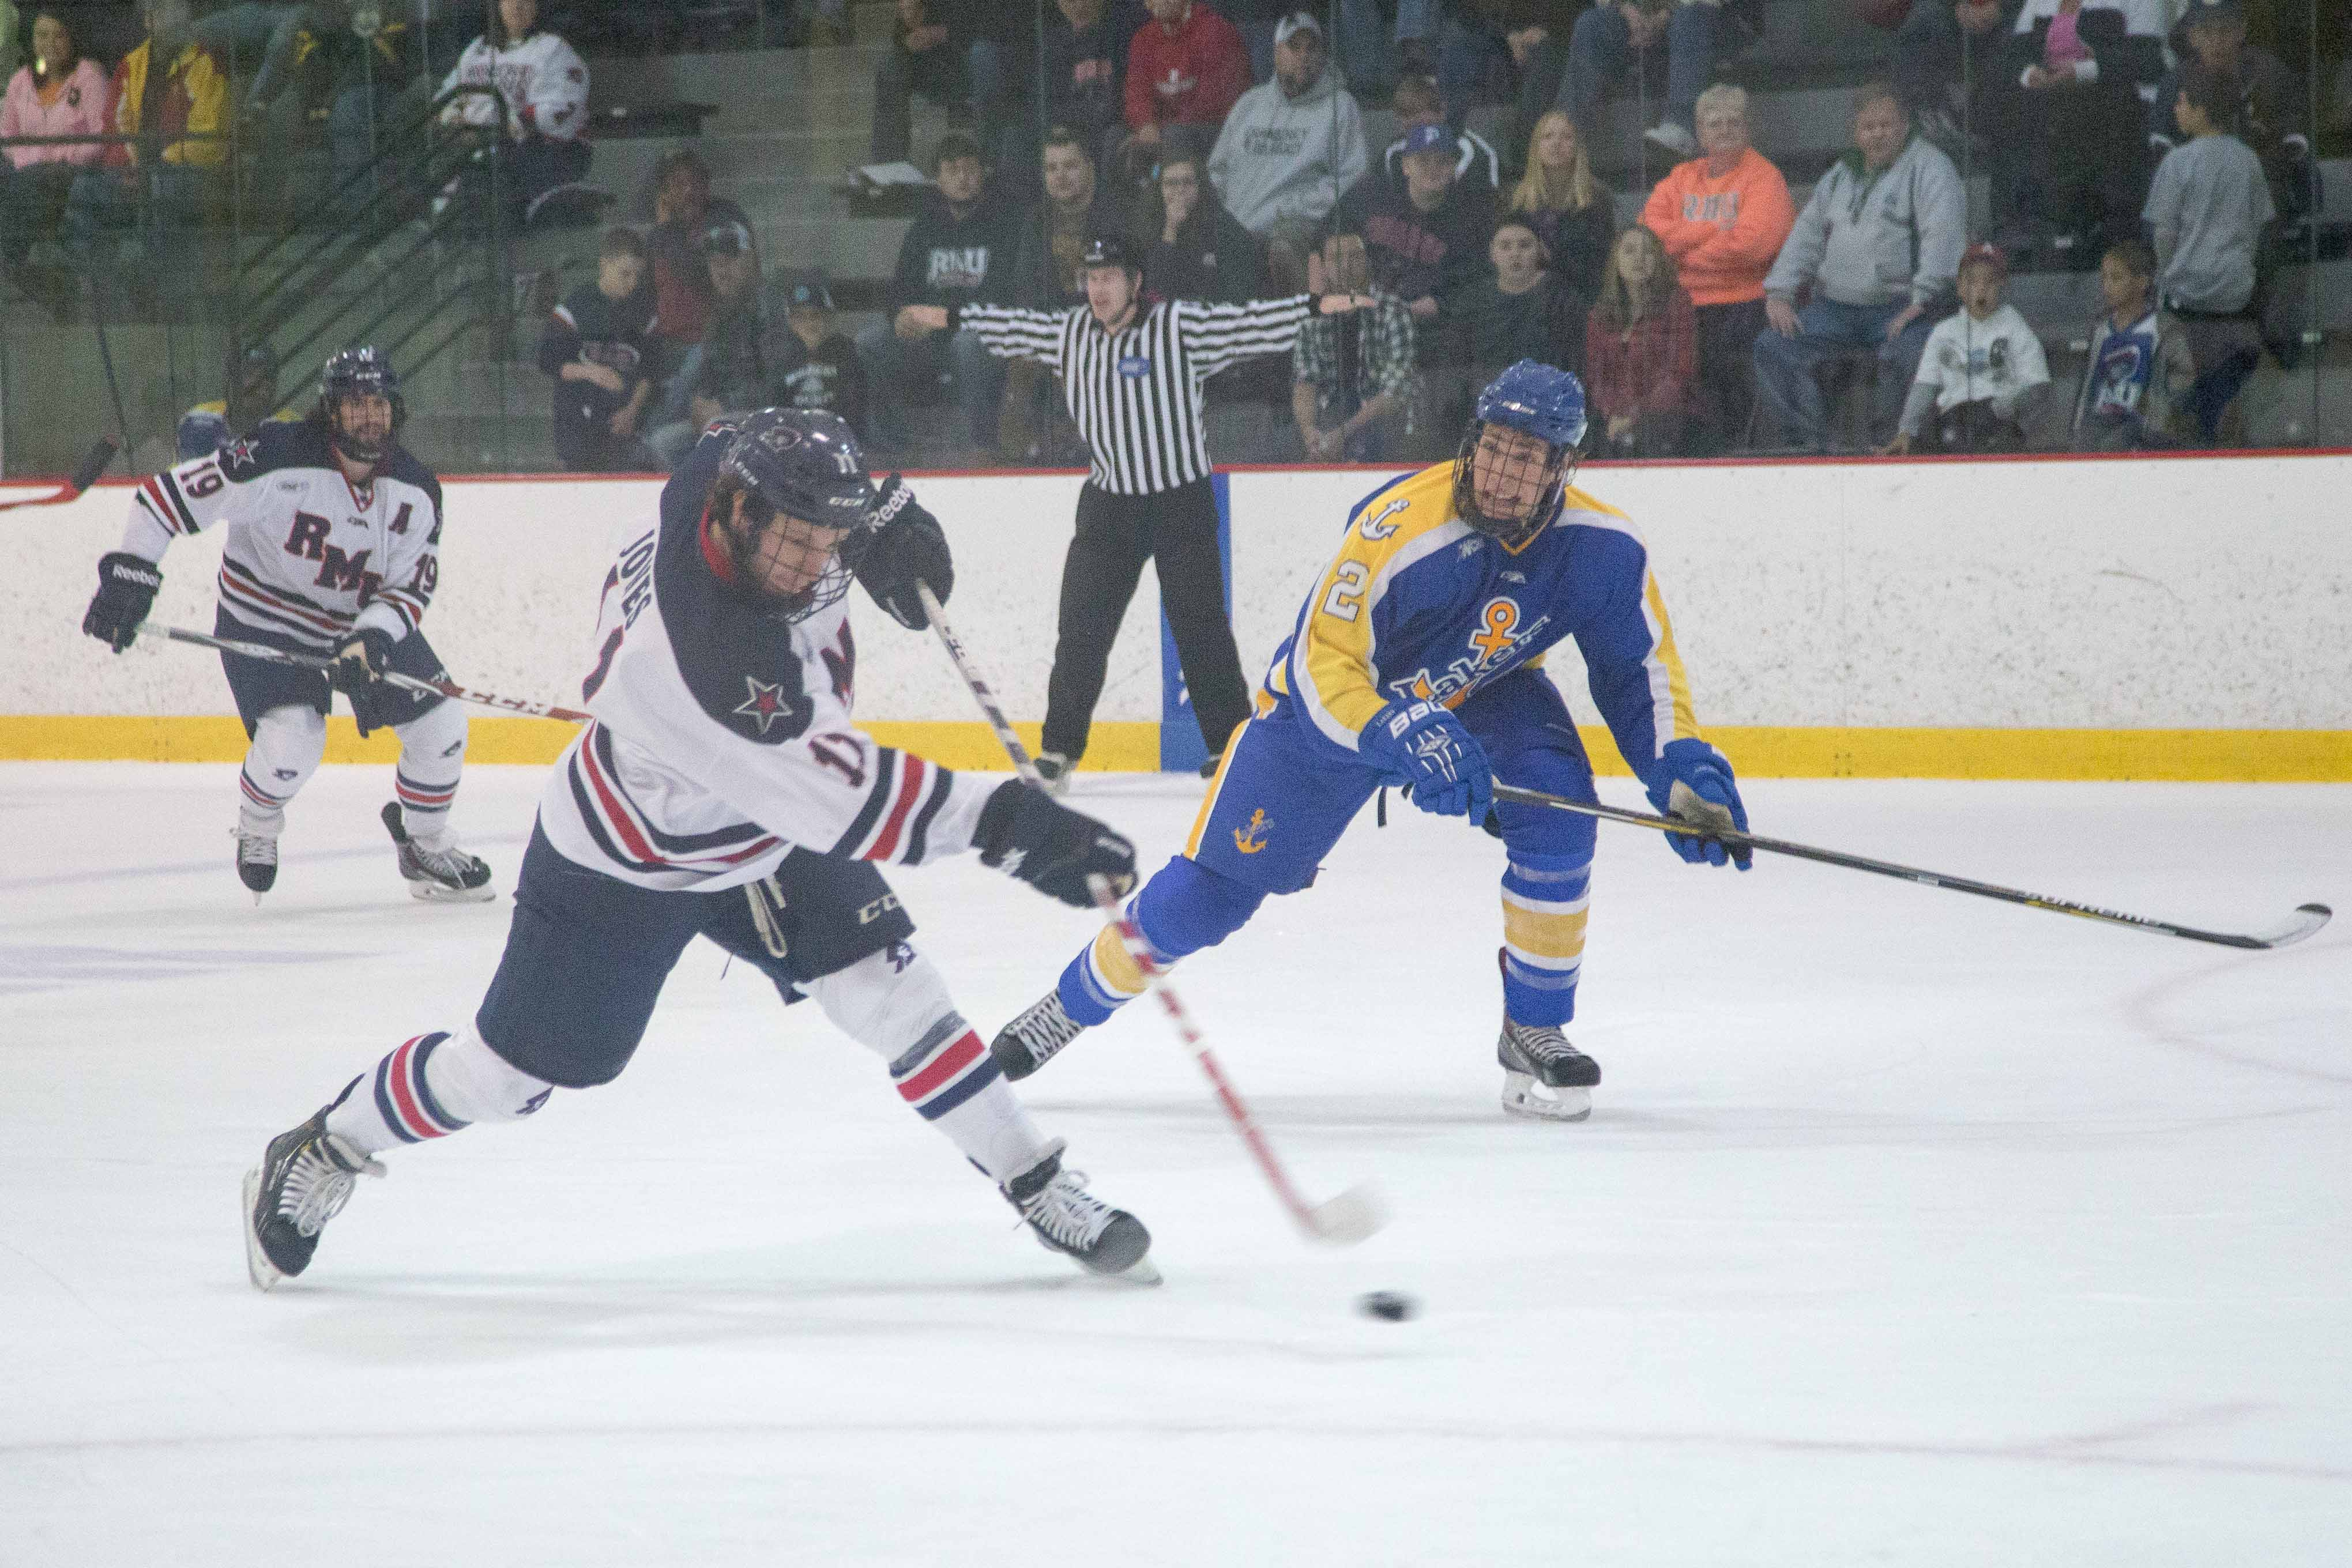 Robert Morris battled Michigan Friday night on the road in Ann Arbor, Michigan.